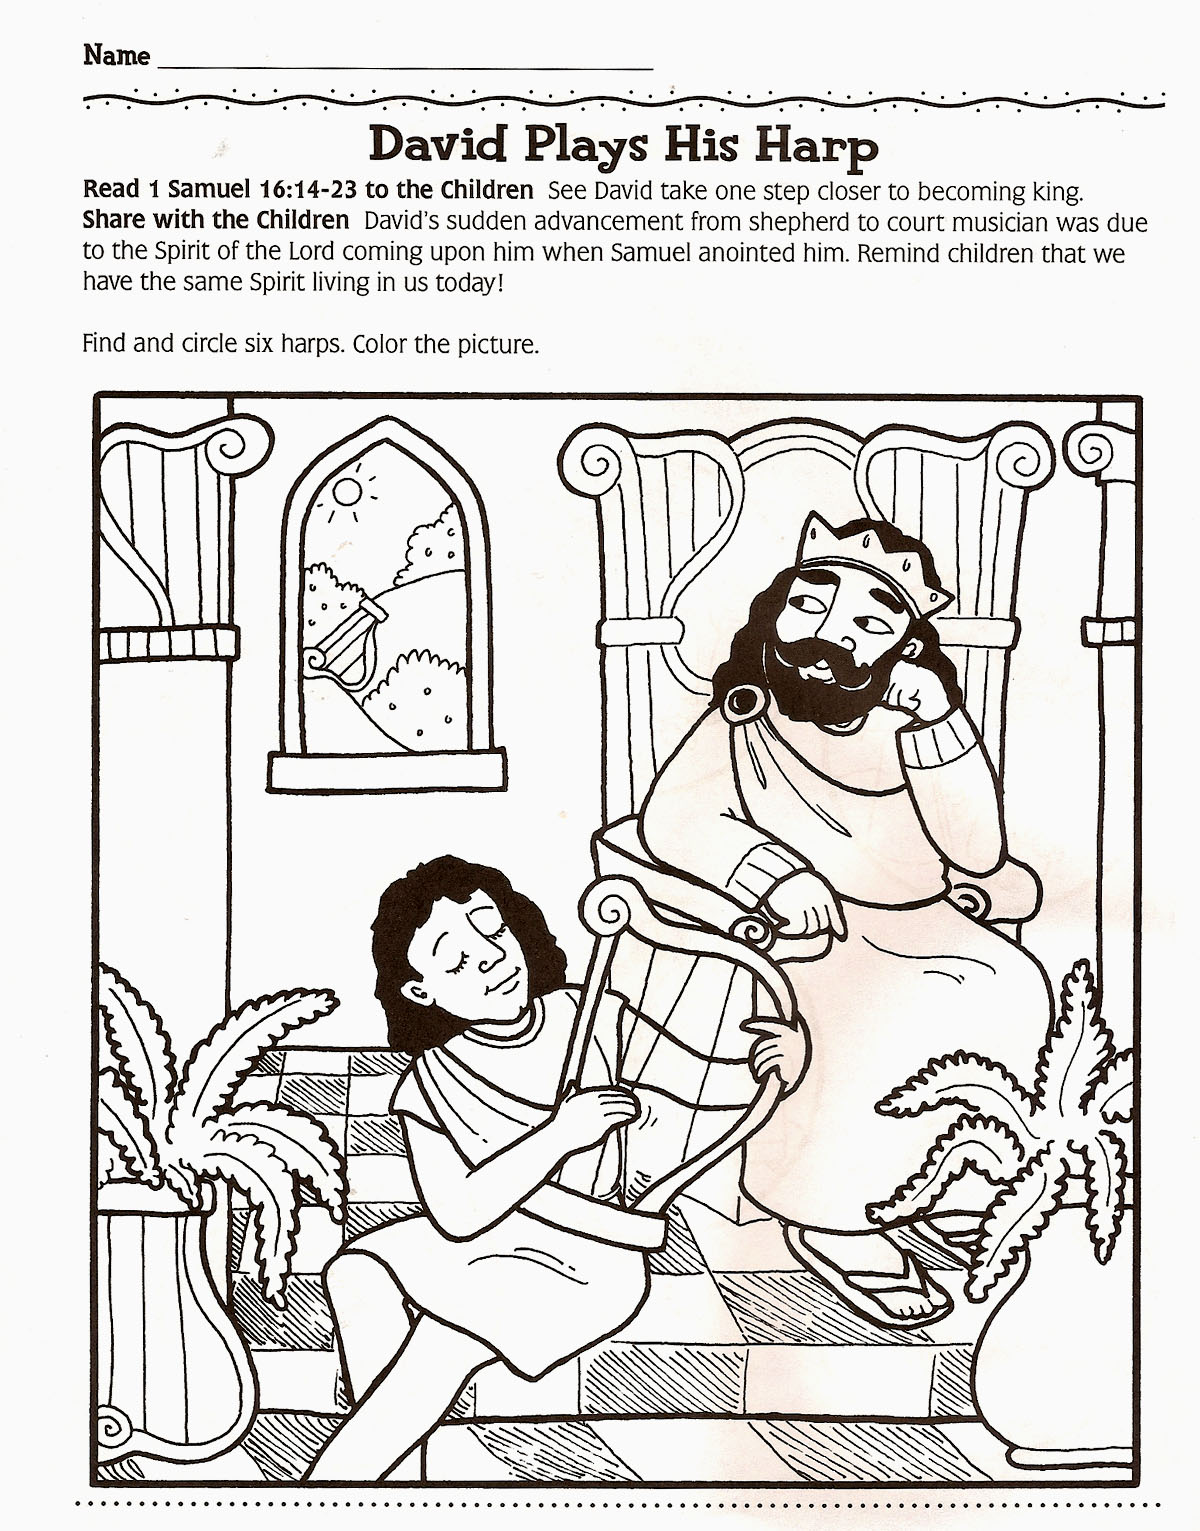 King david harp coloring page coloring pages amor pelo ministerio infantil atividade pr escolar